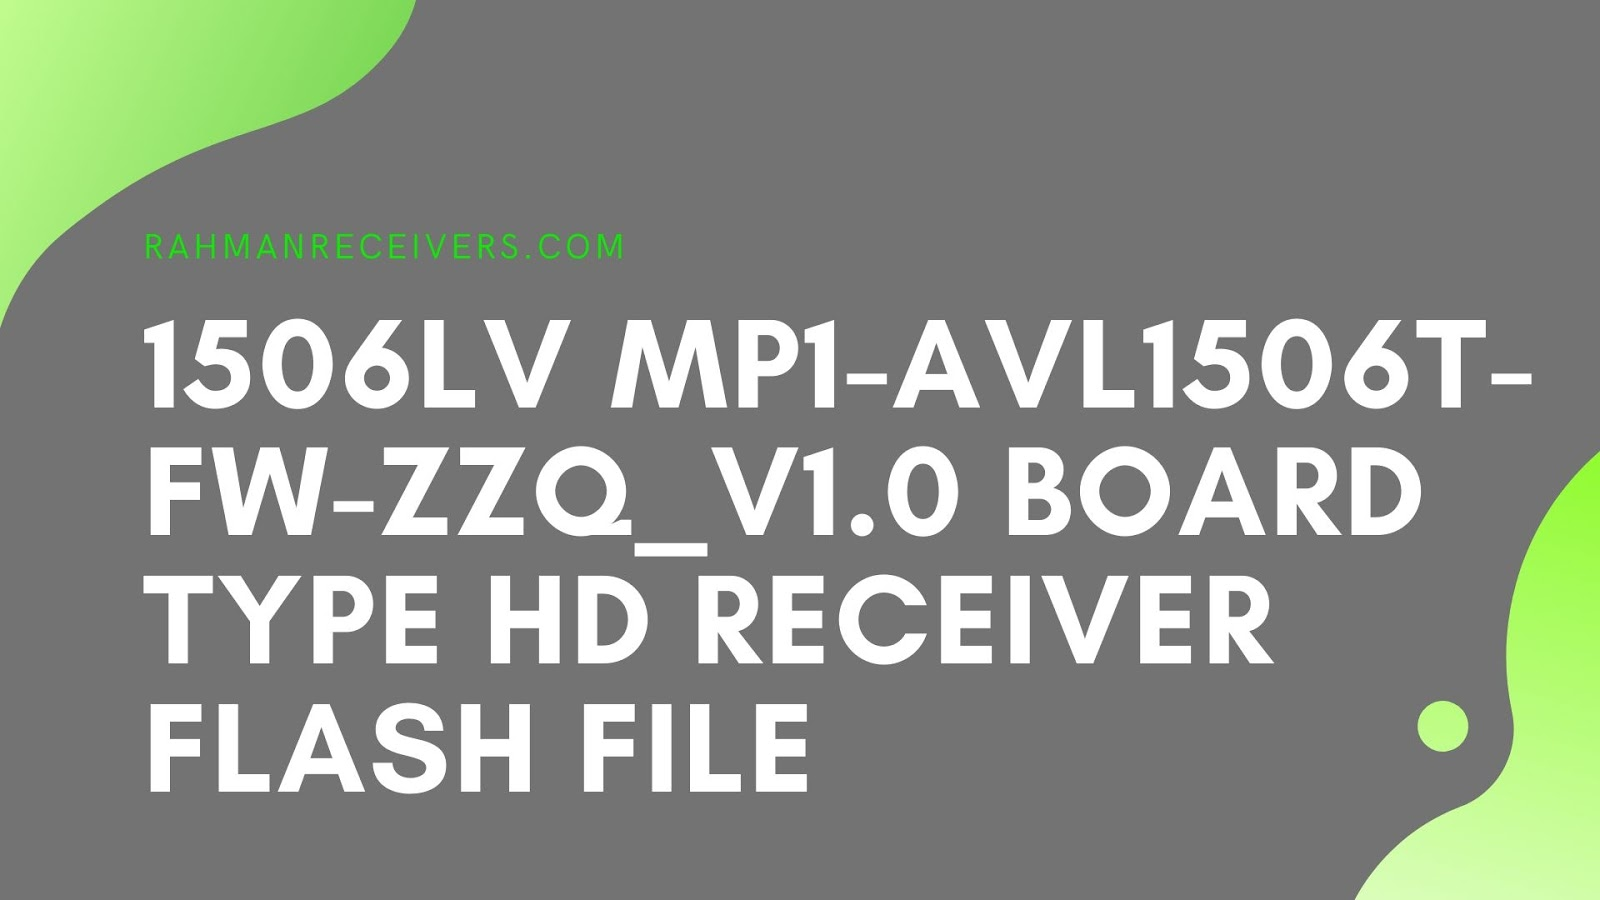 1506LV MP1-AVL1506T-FW-ZZQ_V1.0 BOARD TYPE HD RECEIVER FLASH FILE